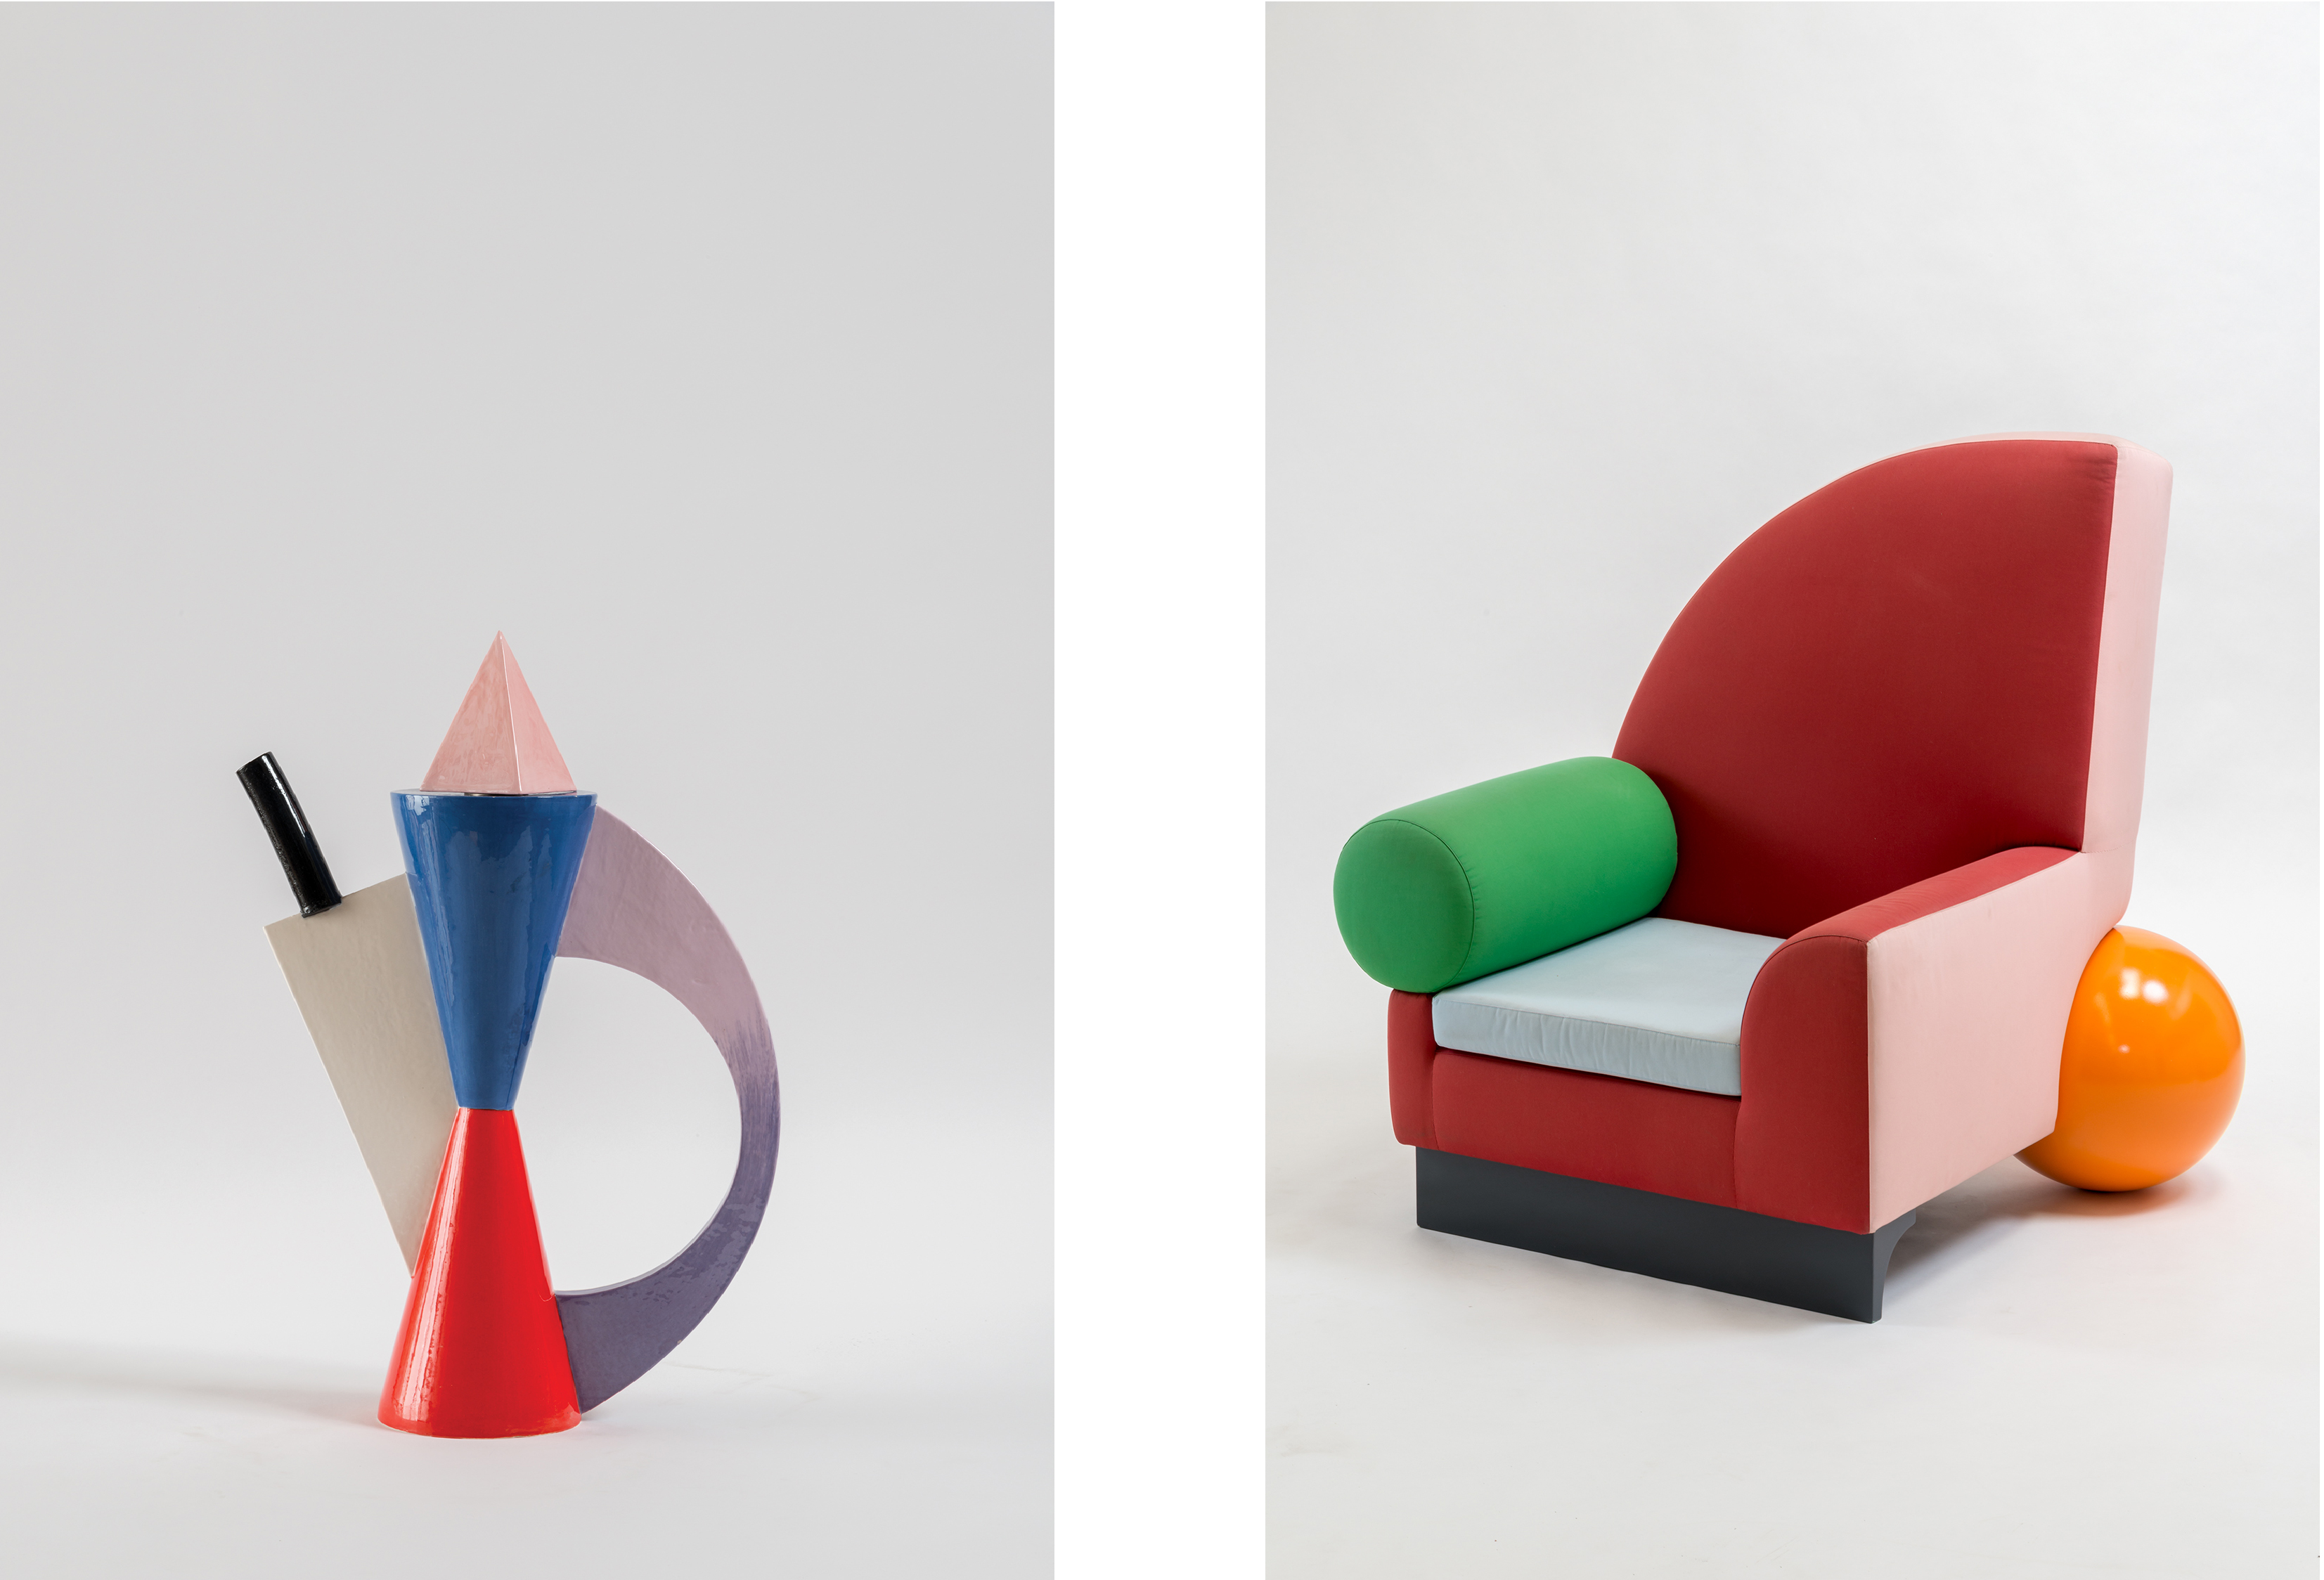 Peter Shire, Hourglass Teapot, 1984, ceramic, 23 × 16 × 6 in., image courtesy of the artist; Peter Shire, Bel Air Chair, 1981, 48 ½ x 43 x 48 ½ in., wood, steel, upholstery fabric, courtesy of the artist, photo by Joshua White